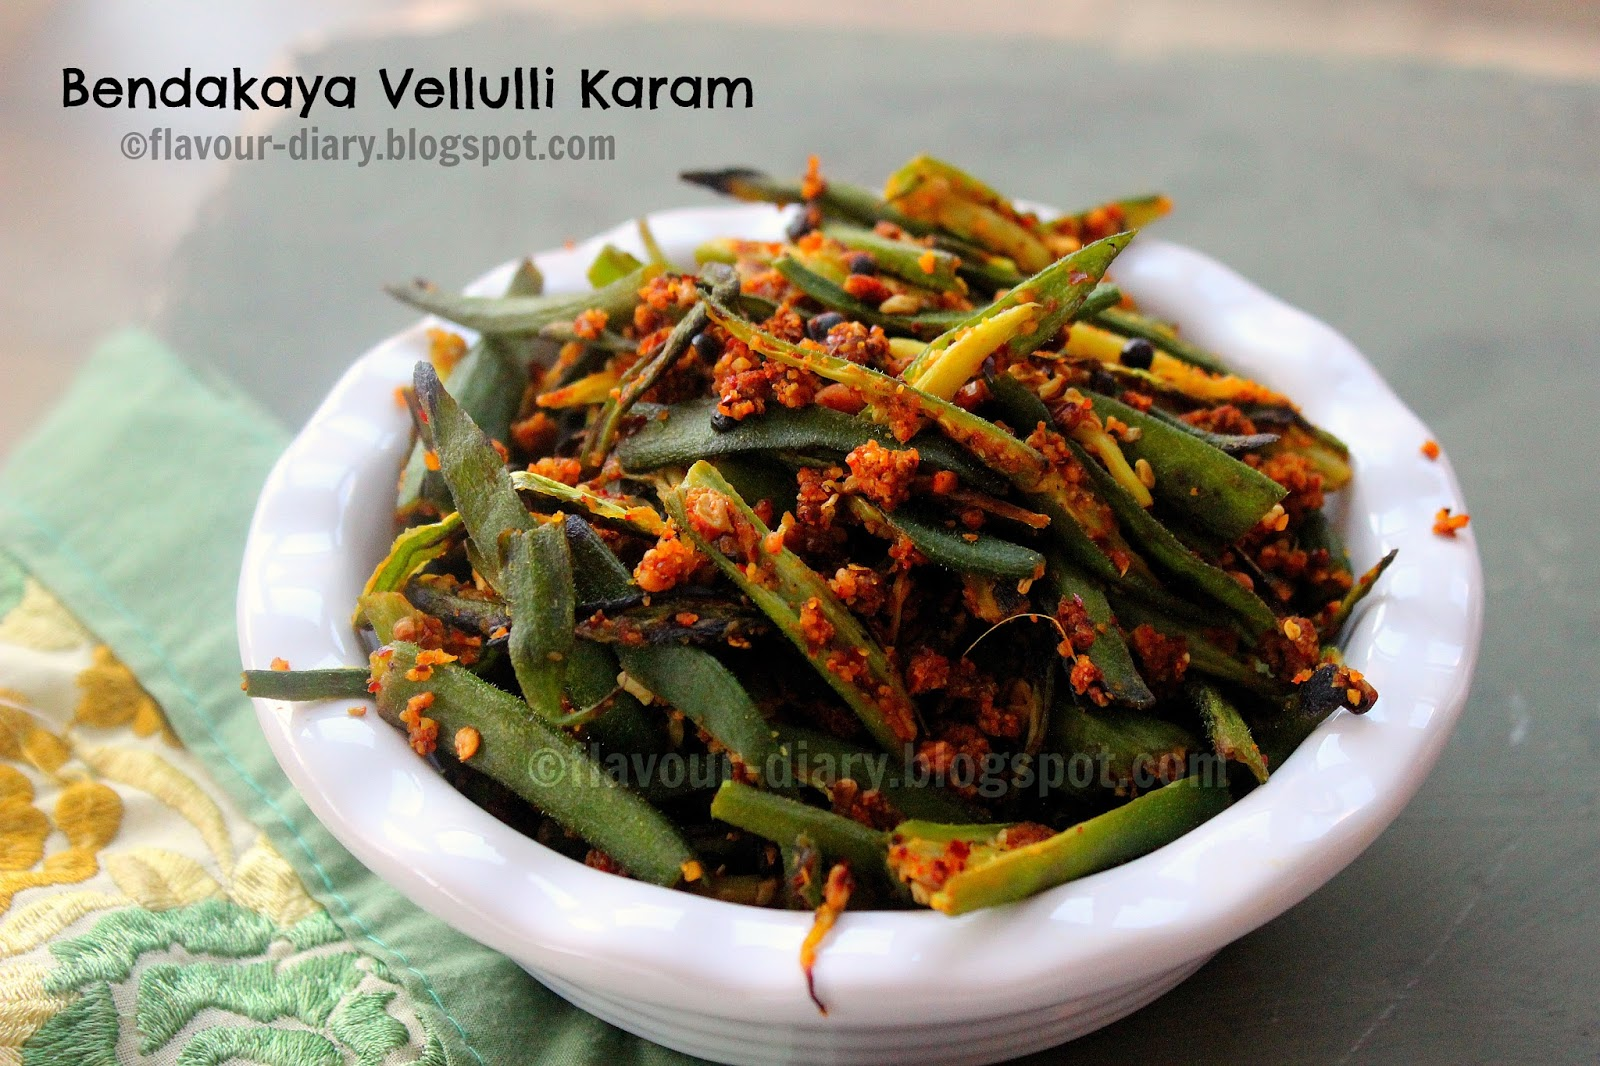 Bendakaya vellulli karam recipe okra in spicy garlic mix for Andhra cuisine vegetarian